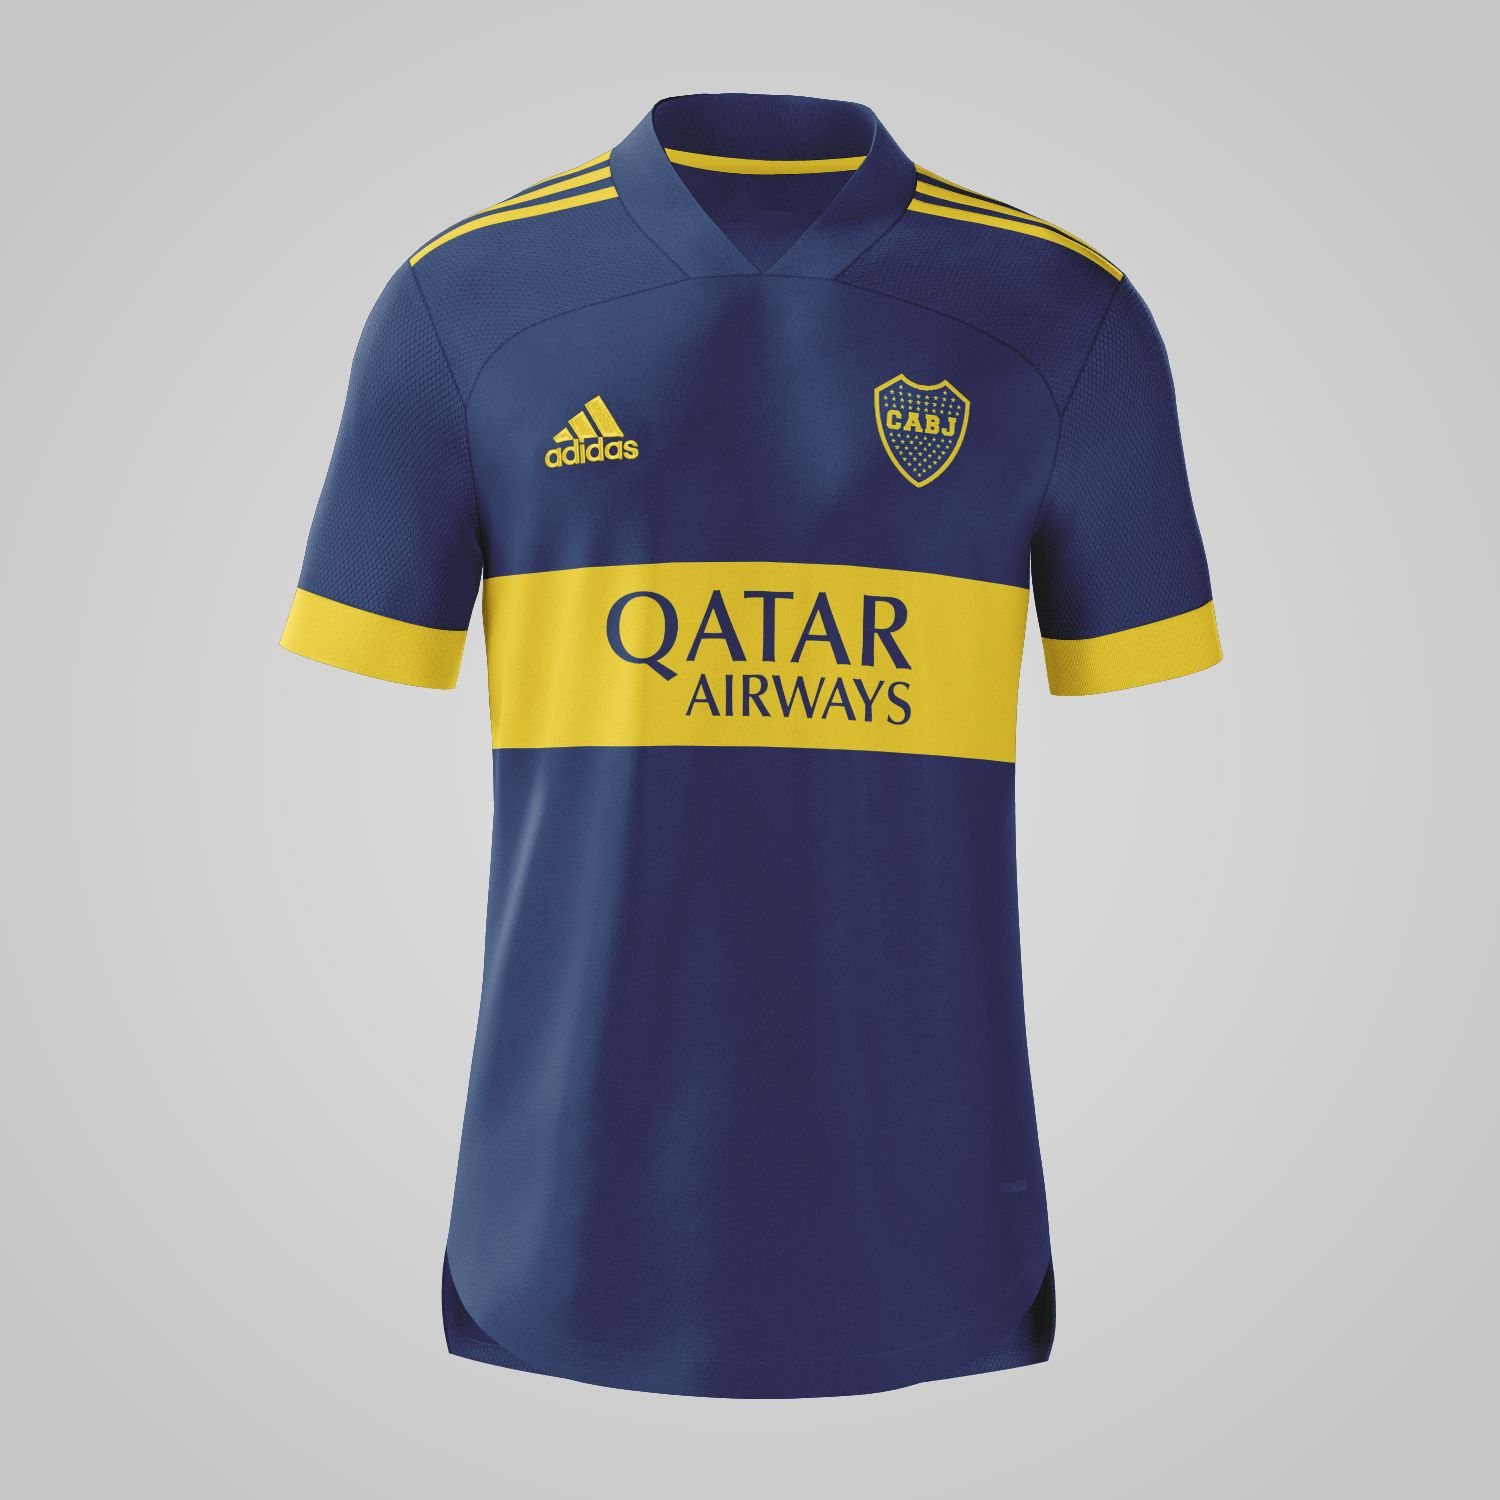 boca-juniors-2020-home-kit-2.jpg